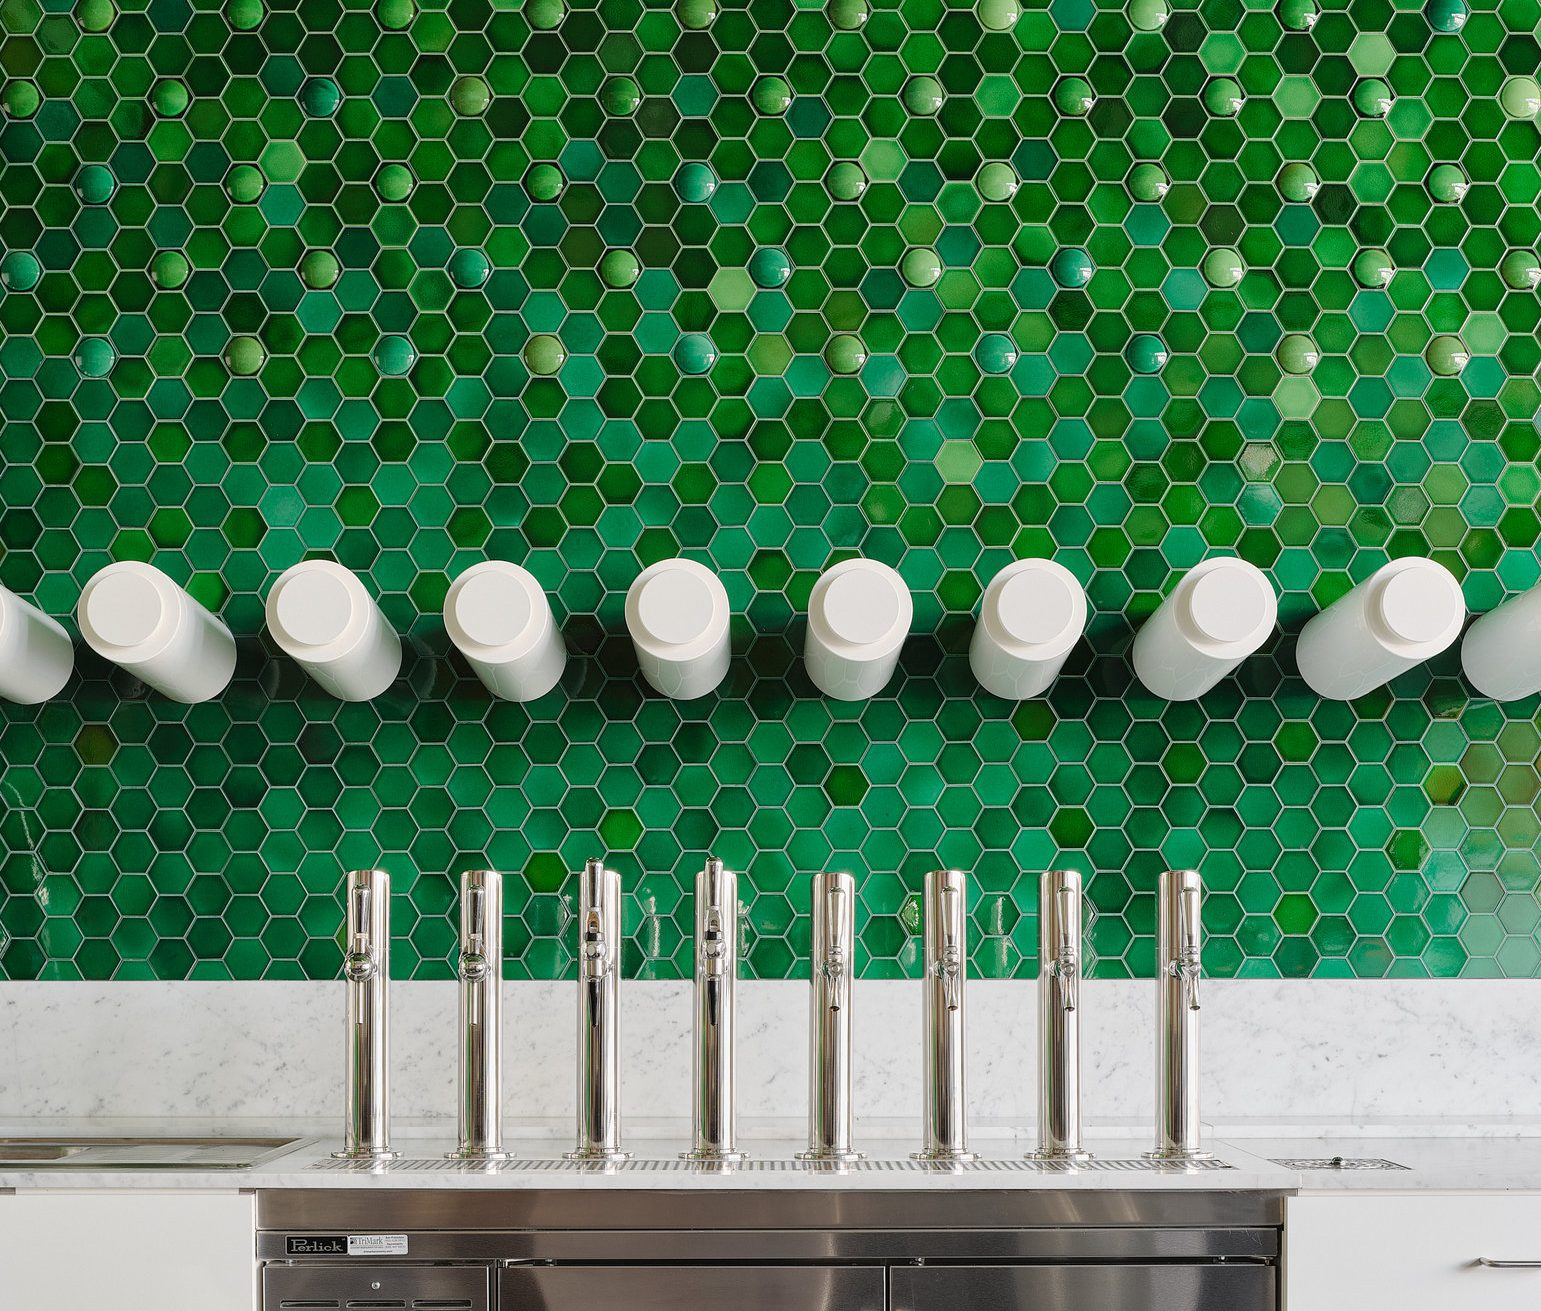 The Tasting Room tap system